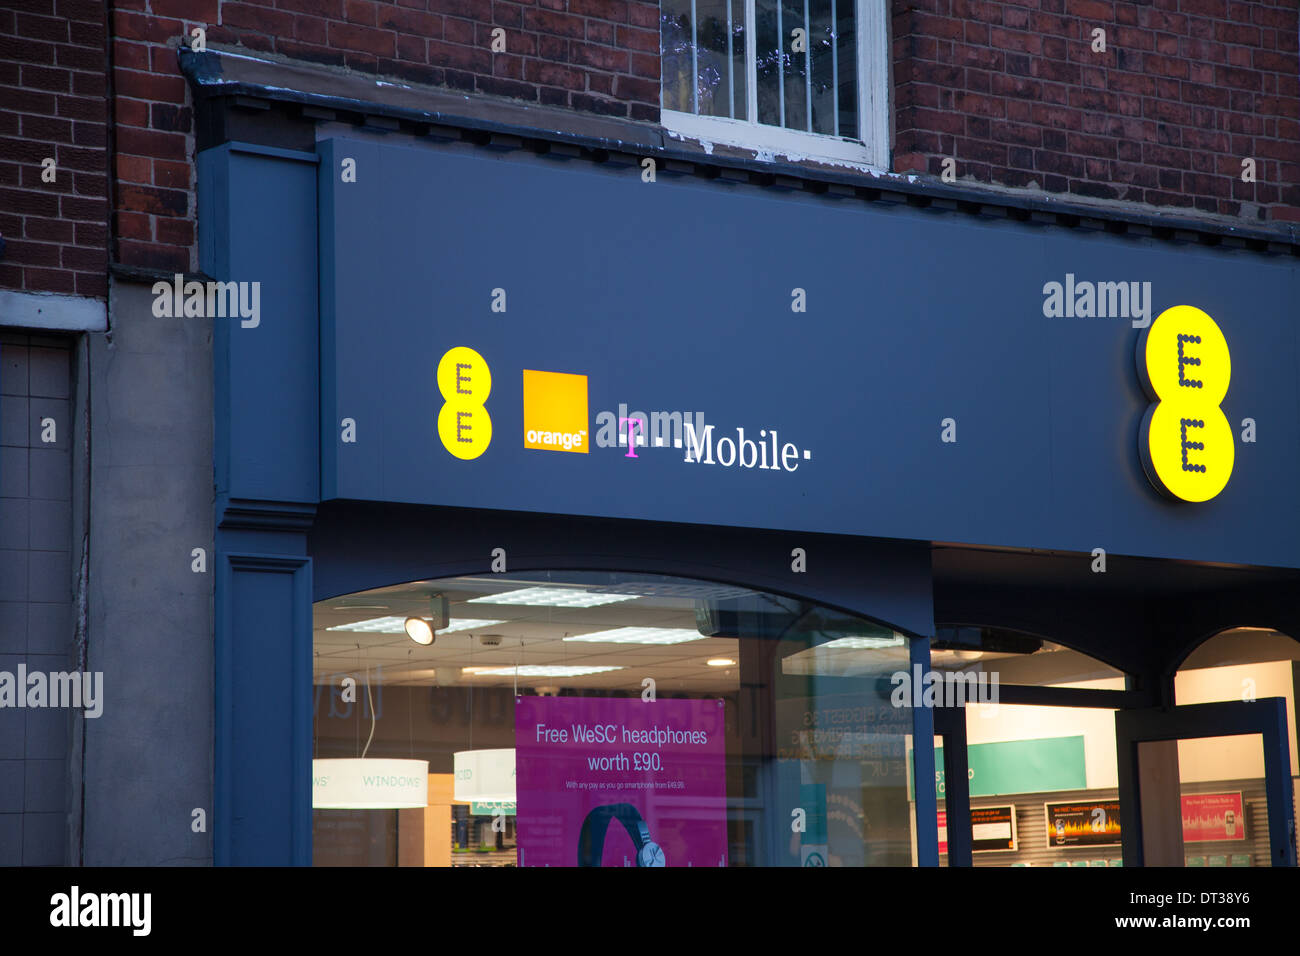 Sign on the front frontage or facade of the E and E shop in Macclesfield Cheshire England UK - Stock Image